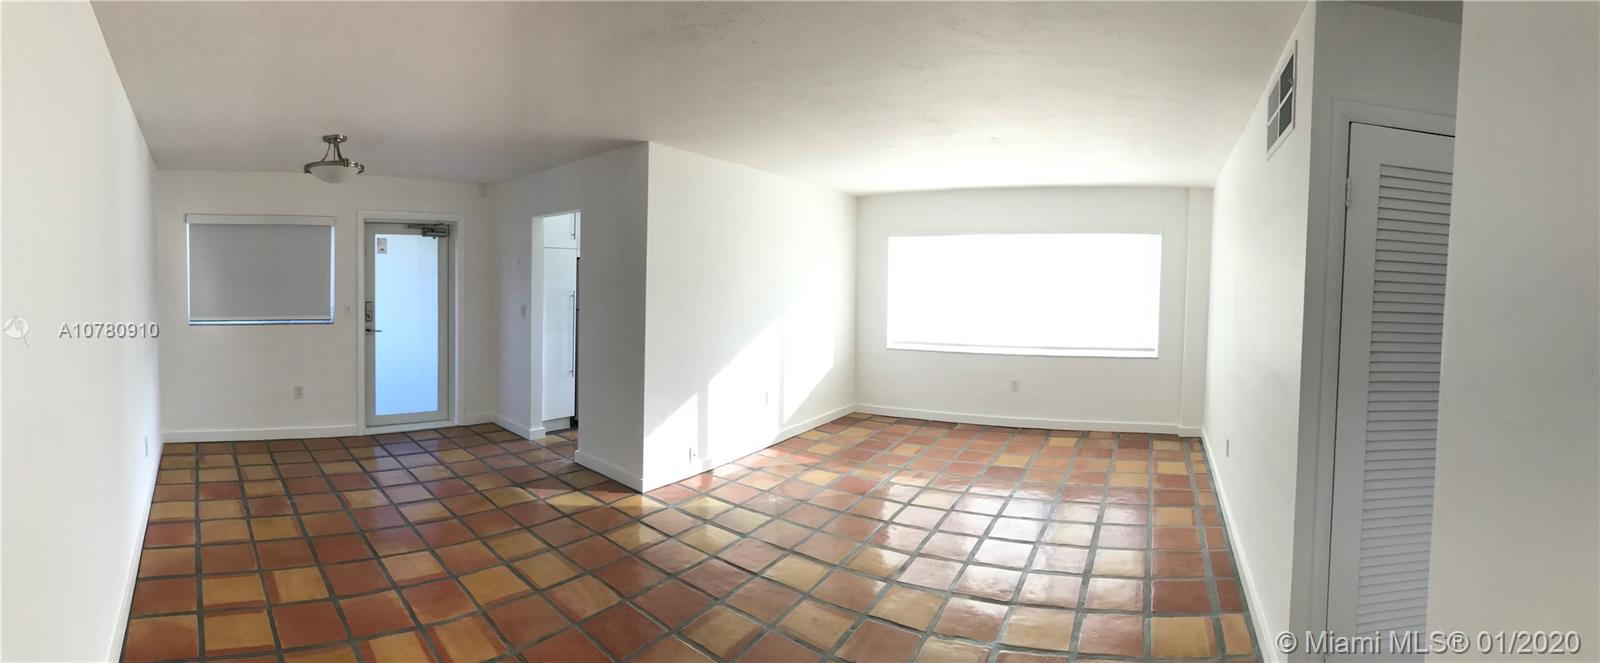 1030  9th St #301 For Sale A10780910, FL